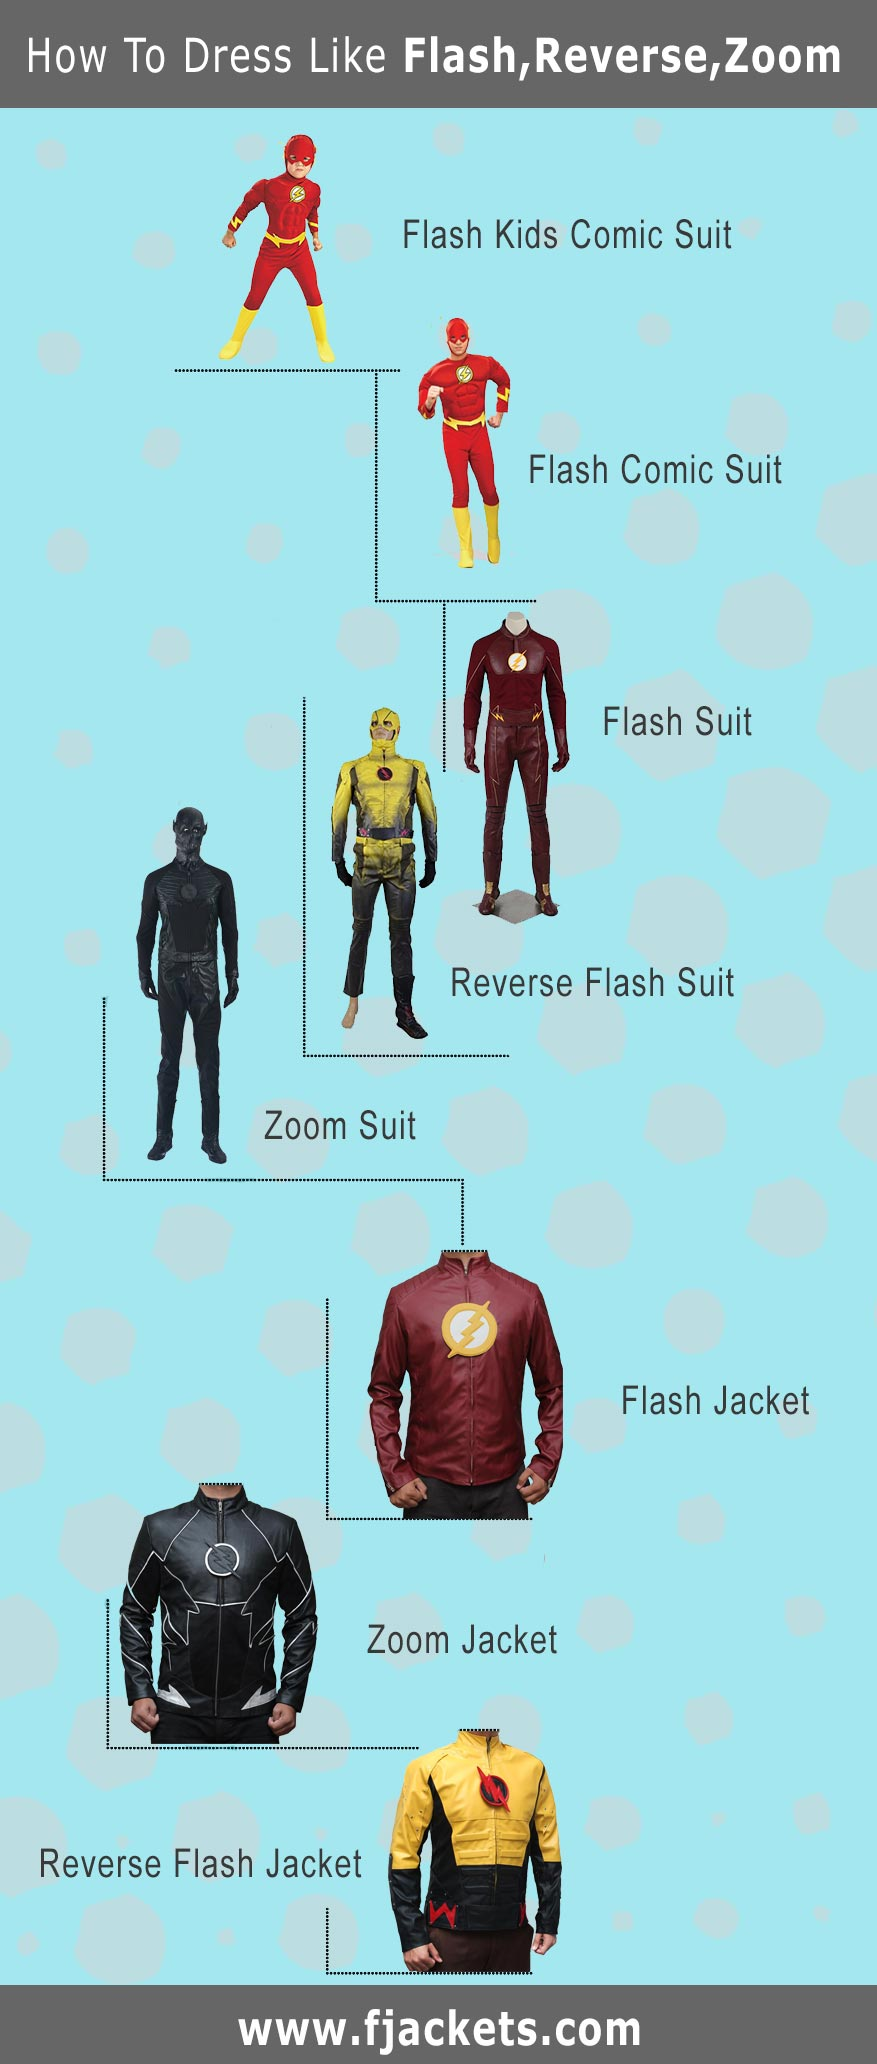 The Flash Costume Infographic